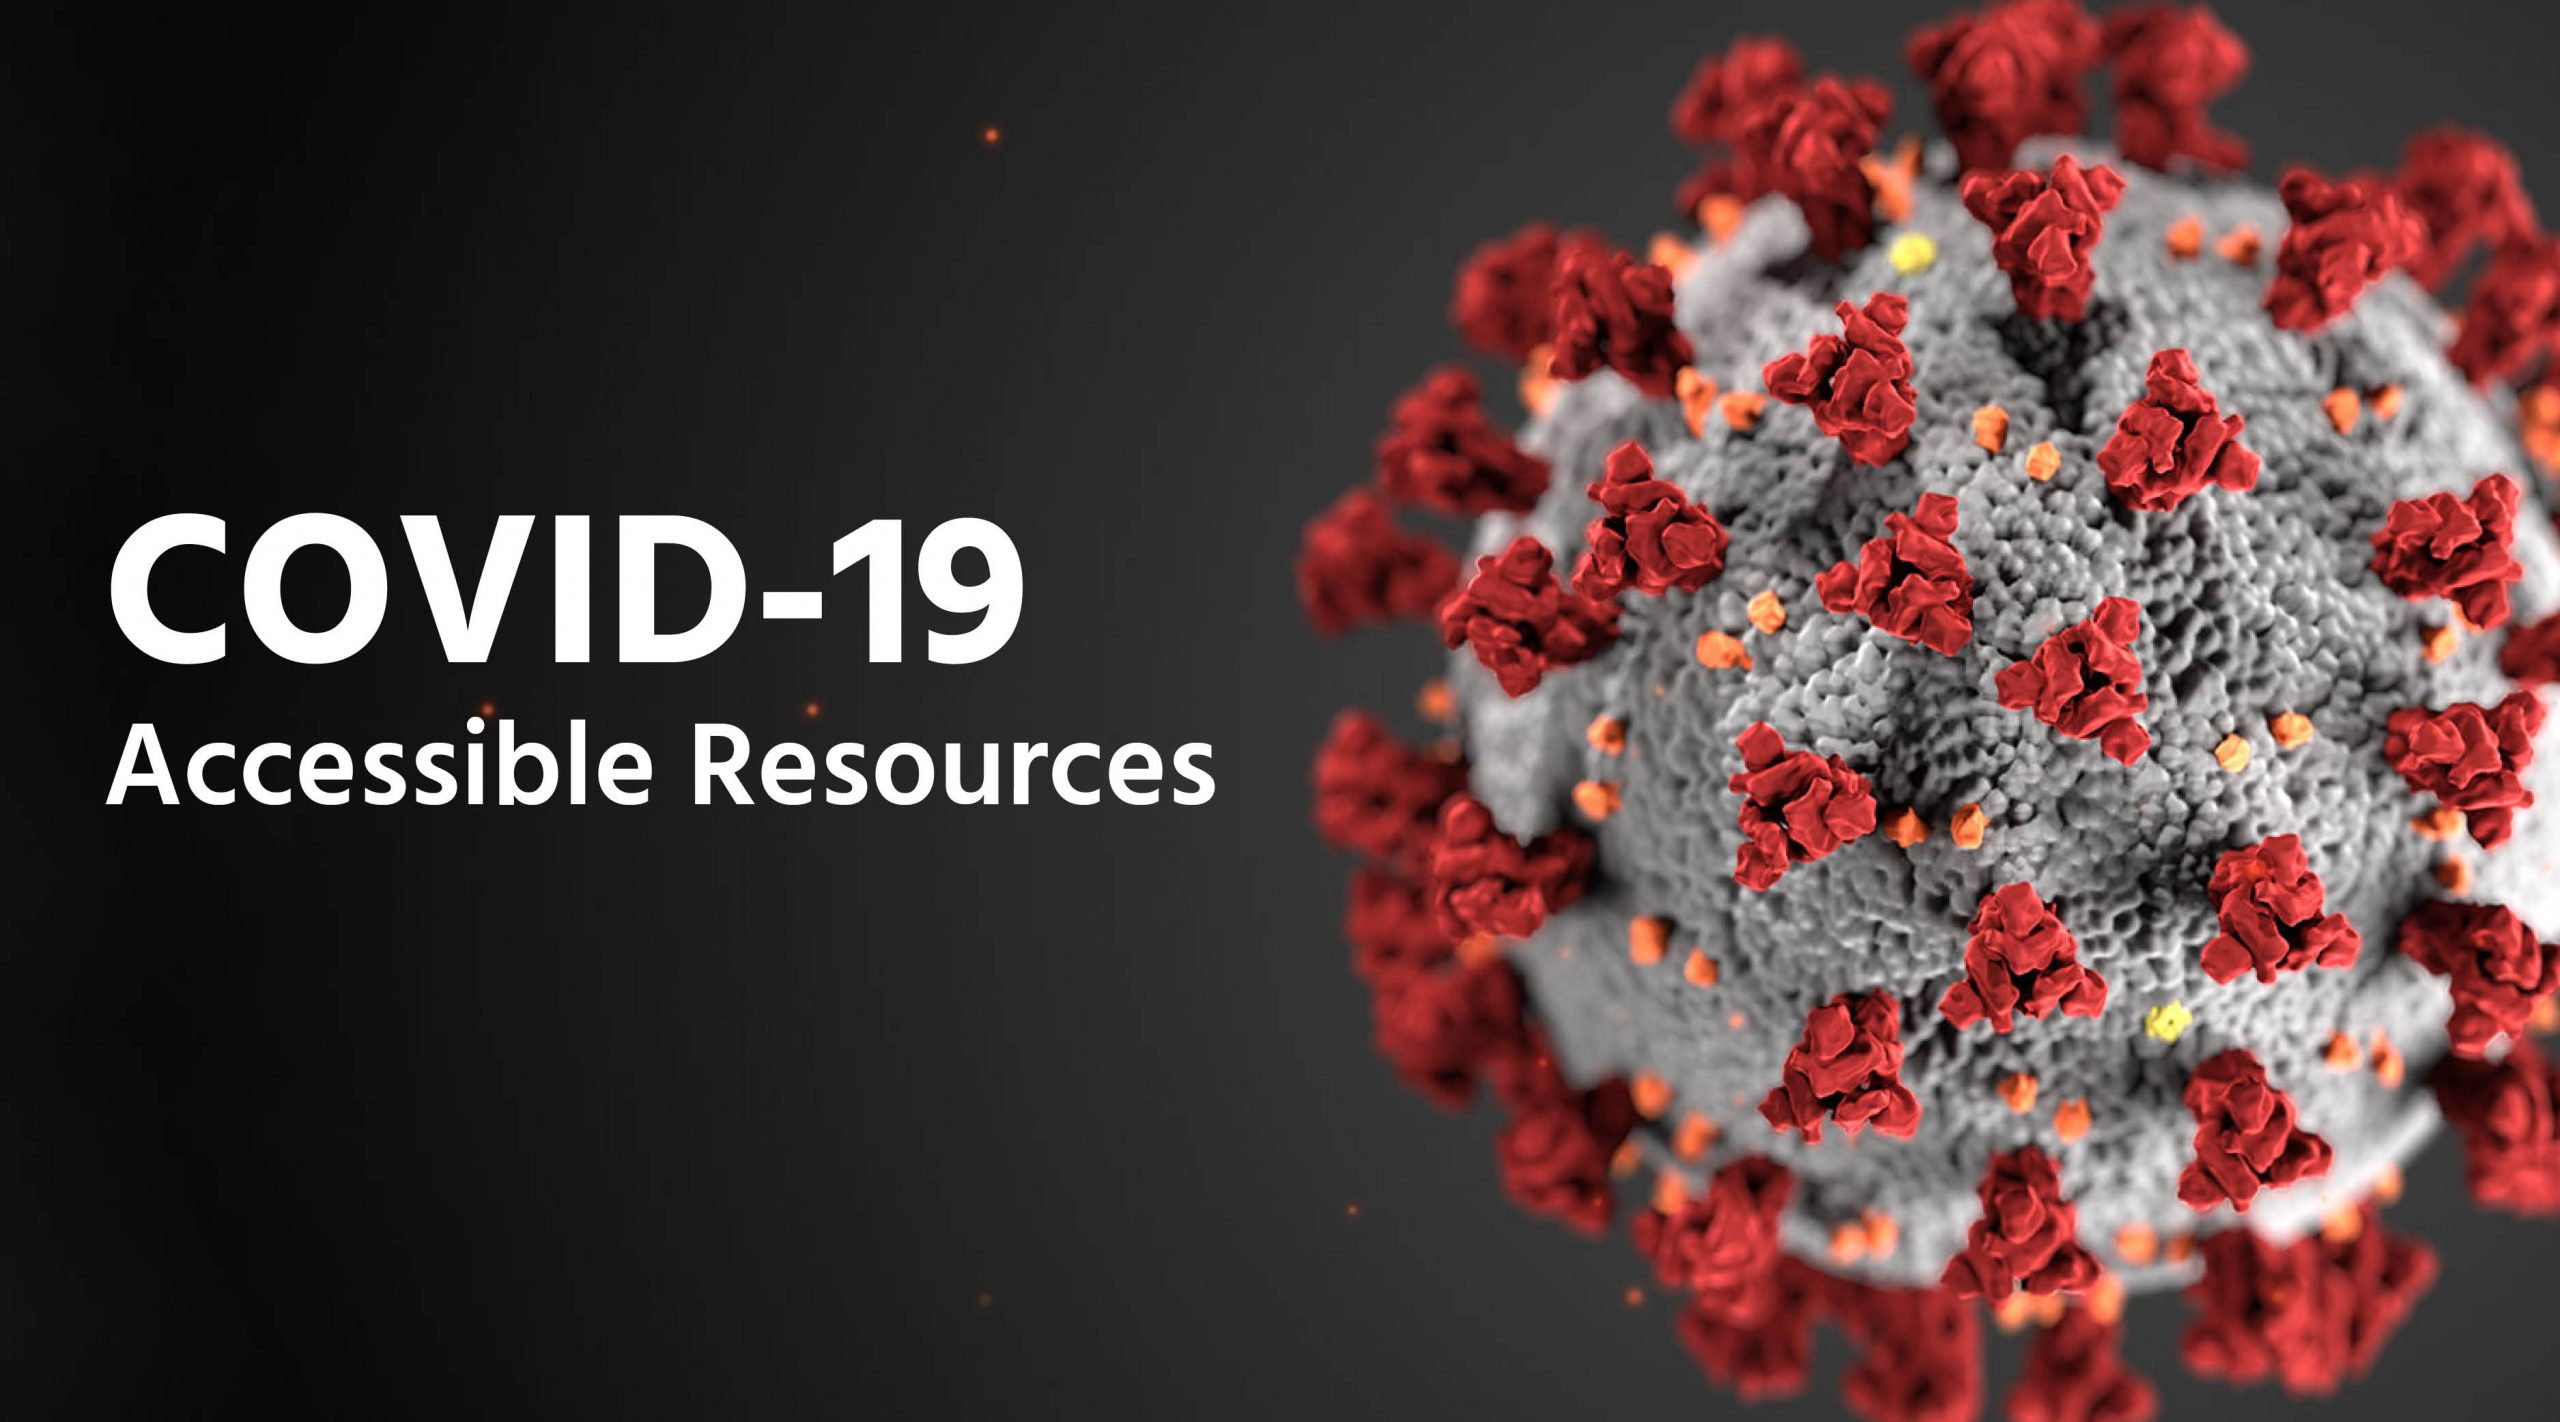 Accessible Resources with graphic of a coronavirus